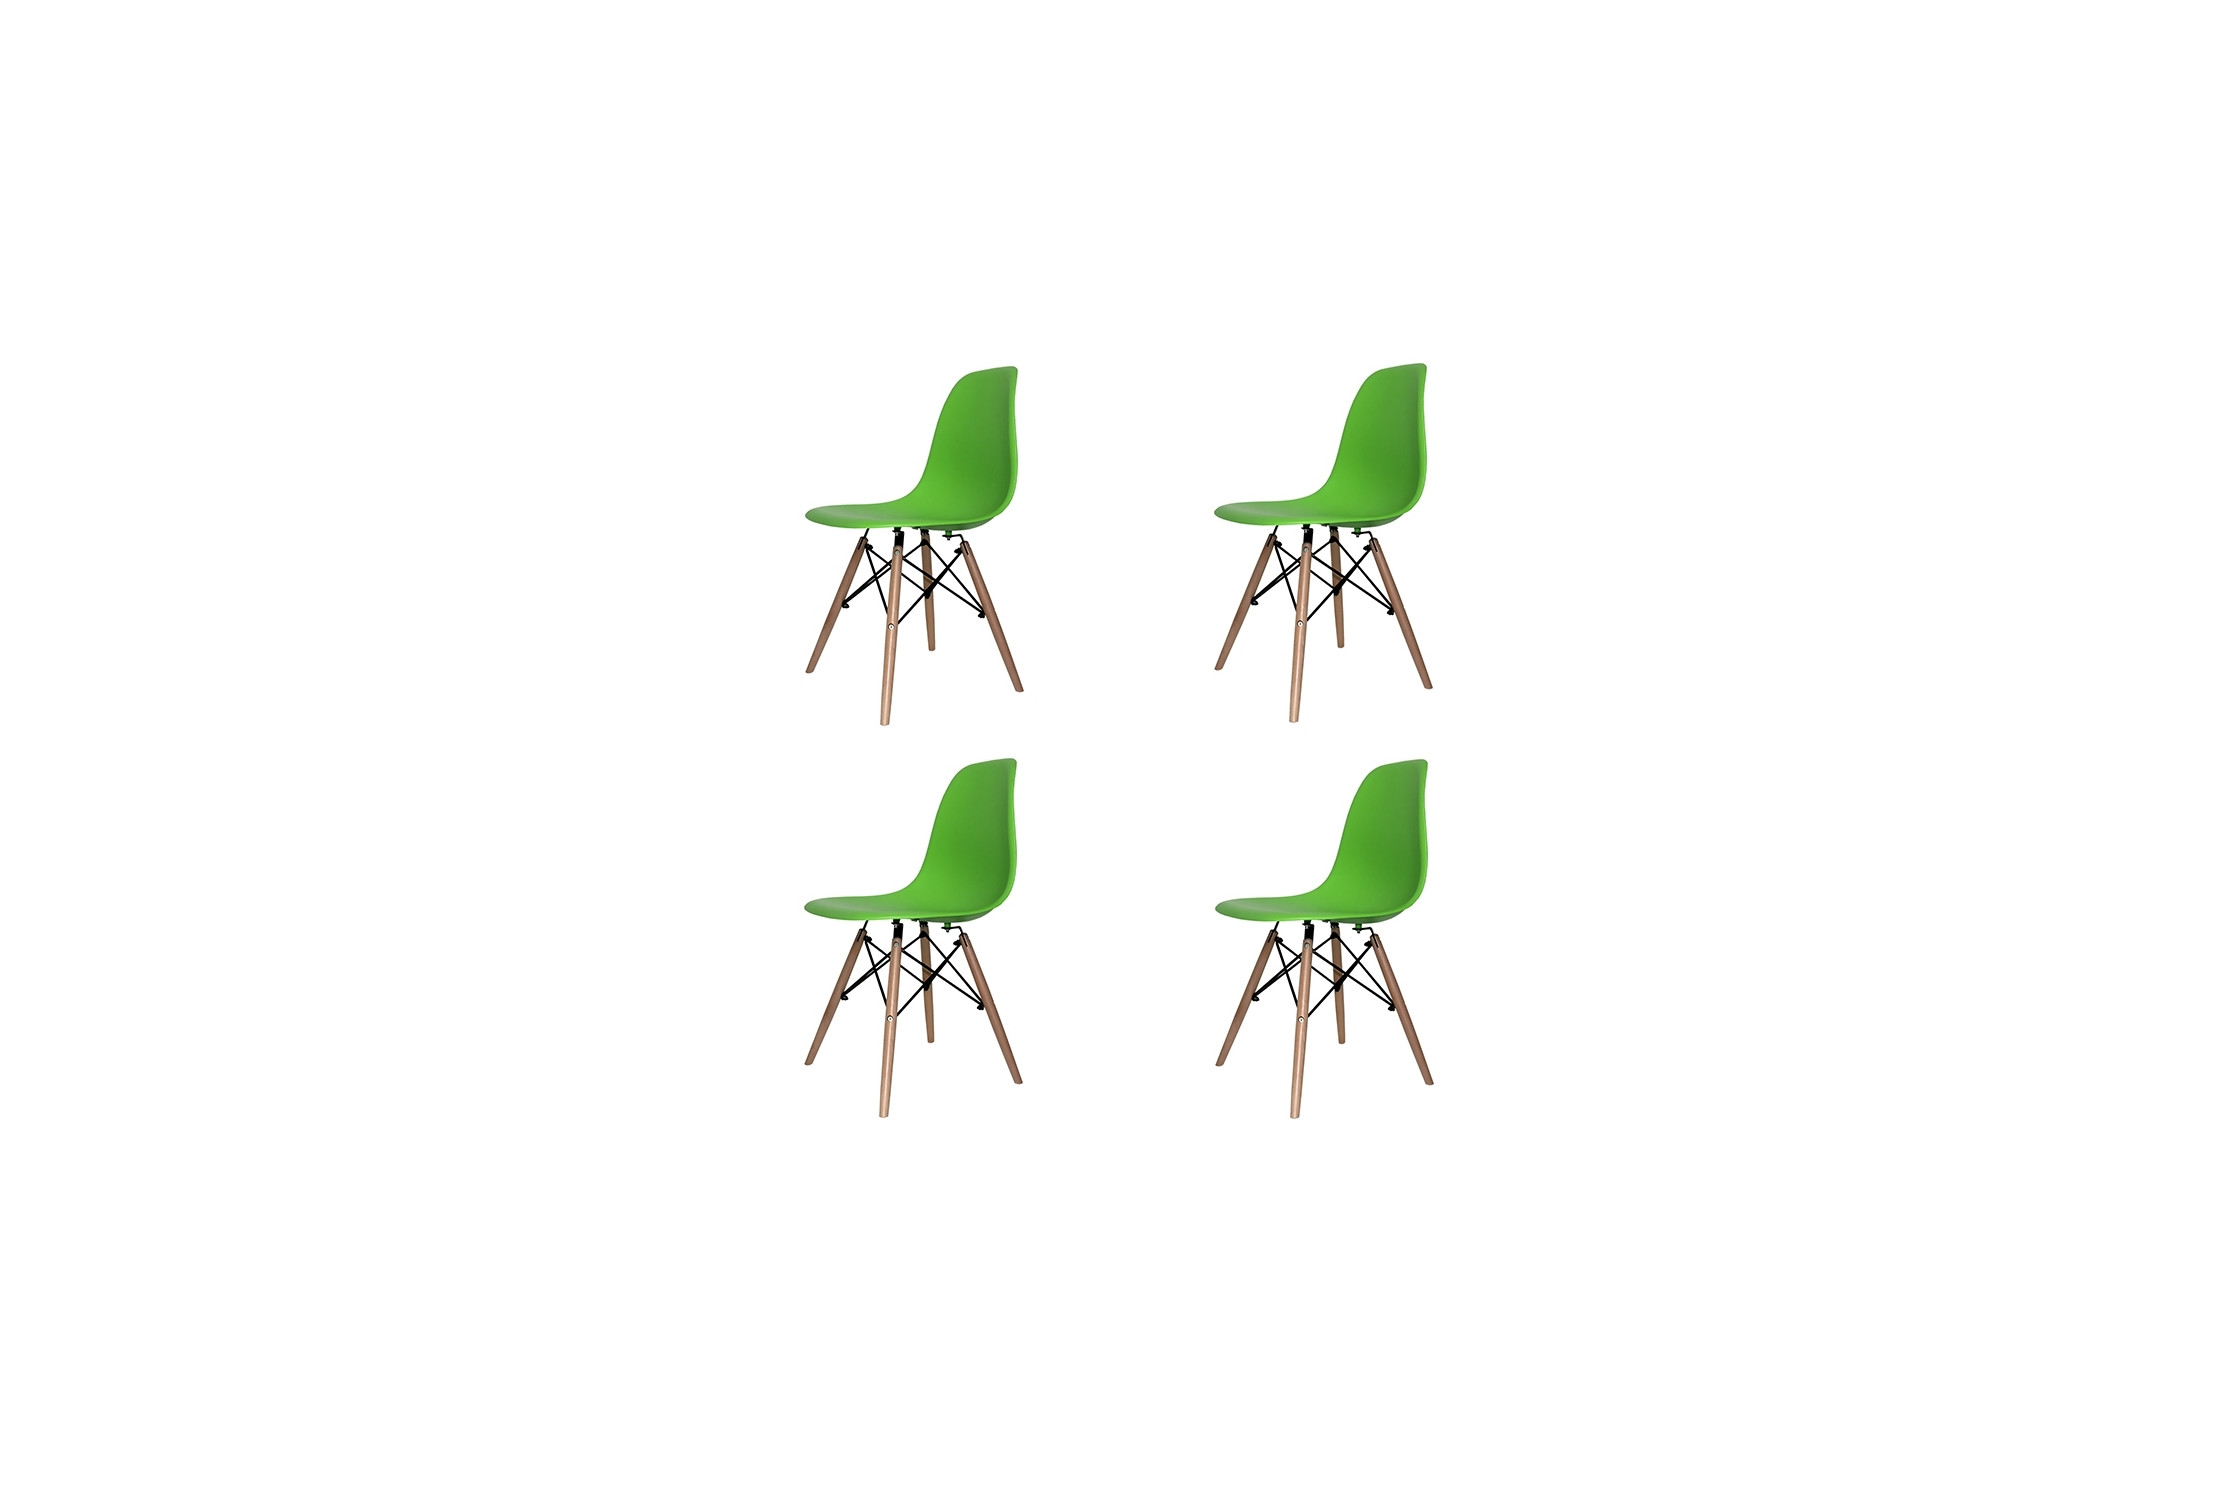 PACK 4 SILLAS TOWER WOOD VERDES EXTRA QUALITY